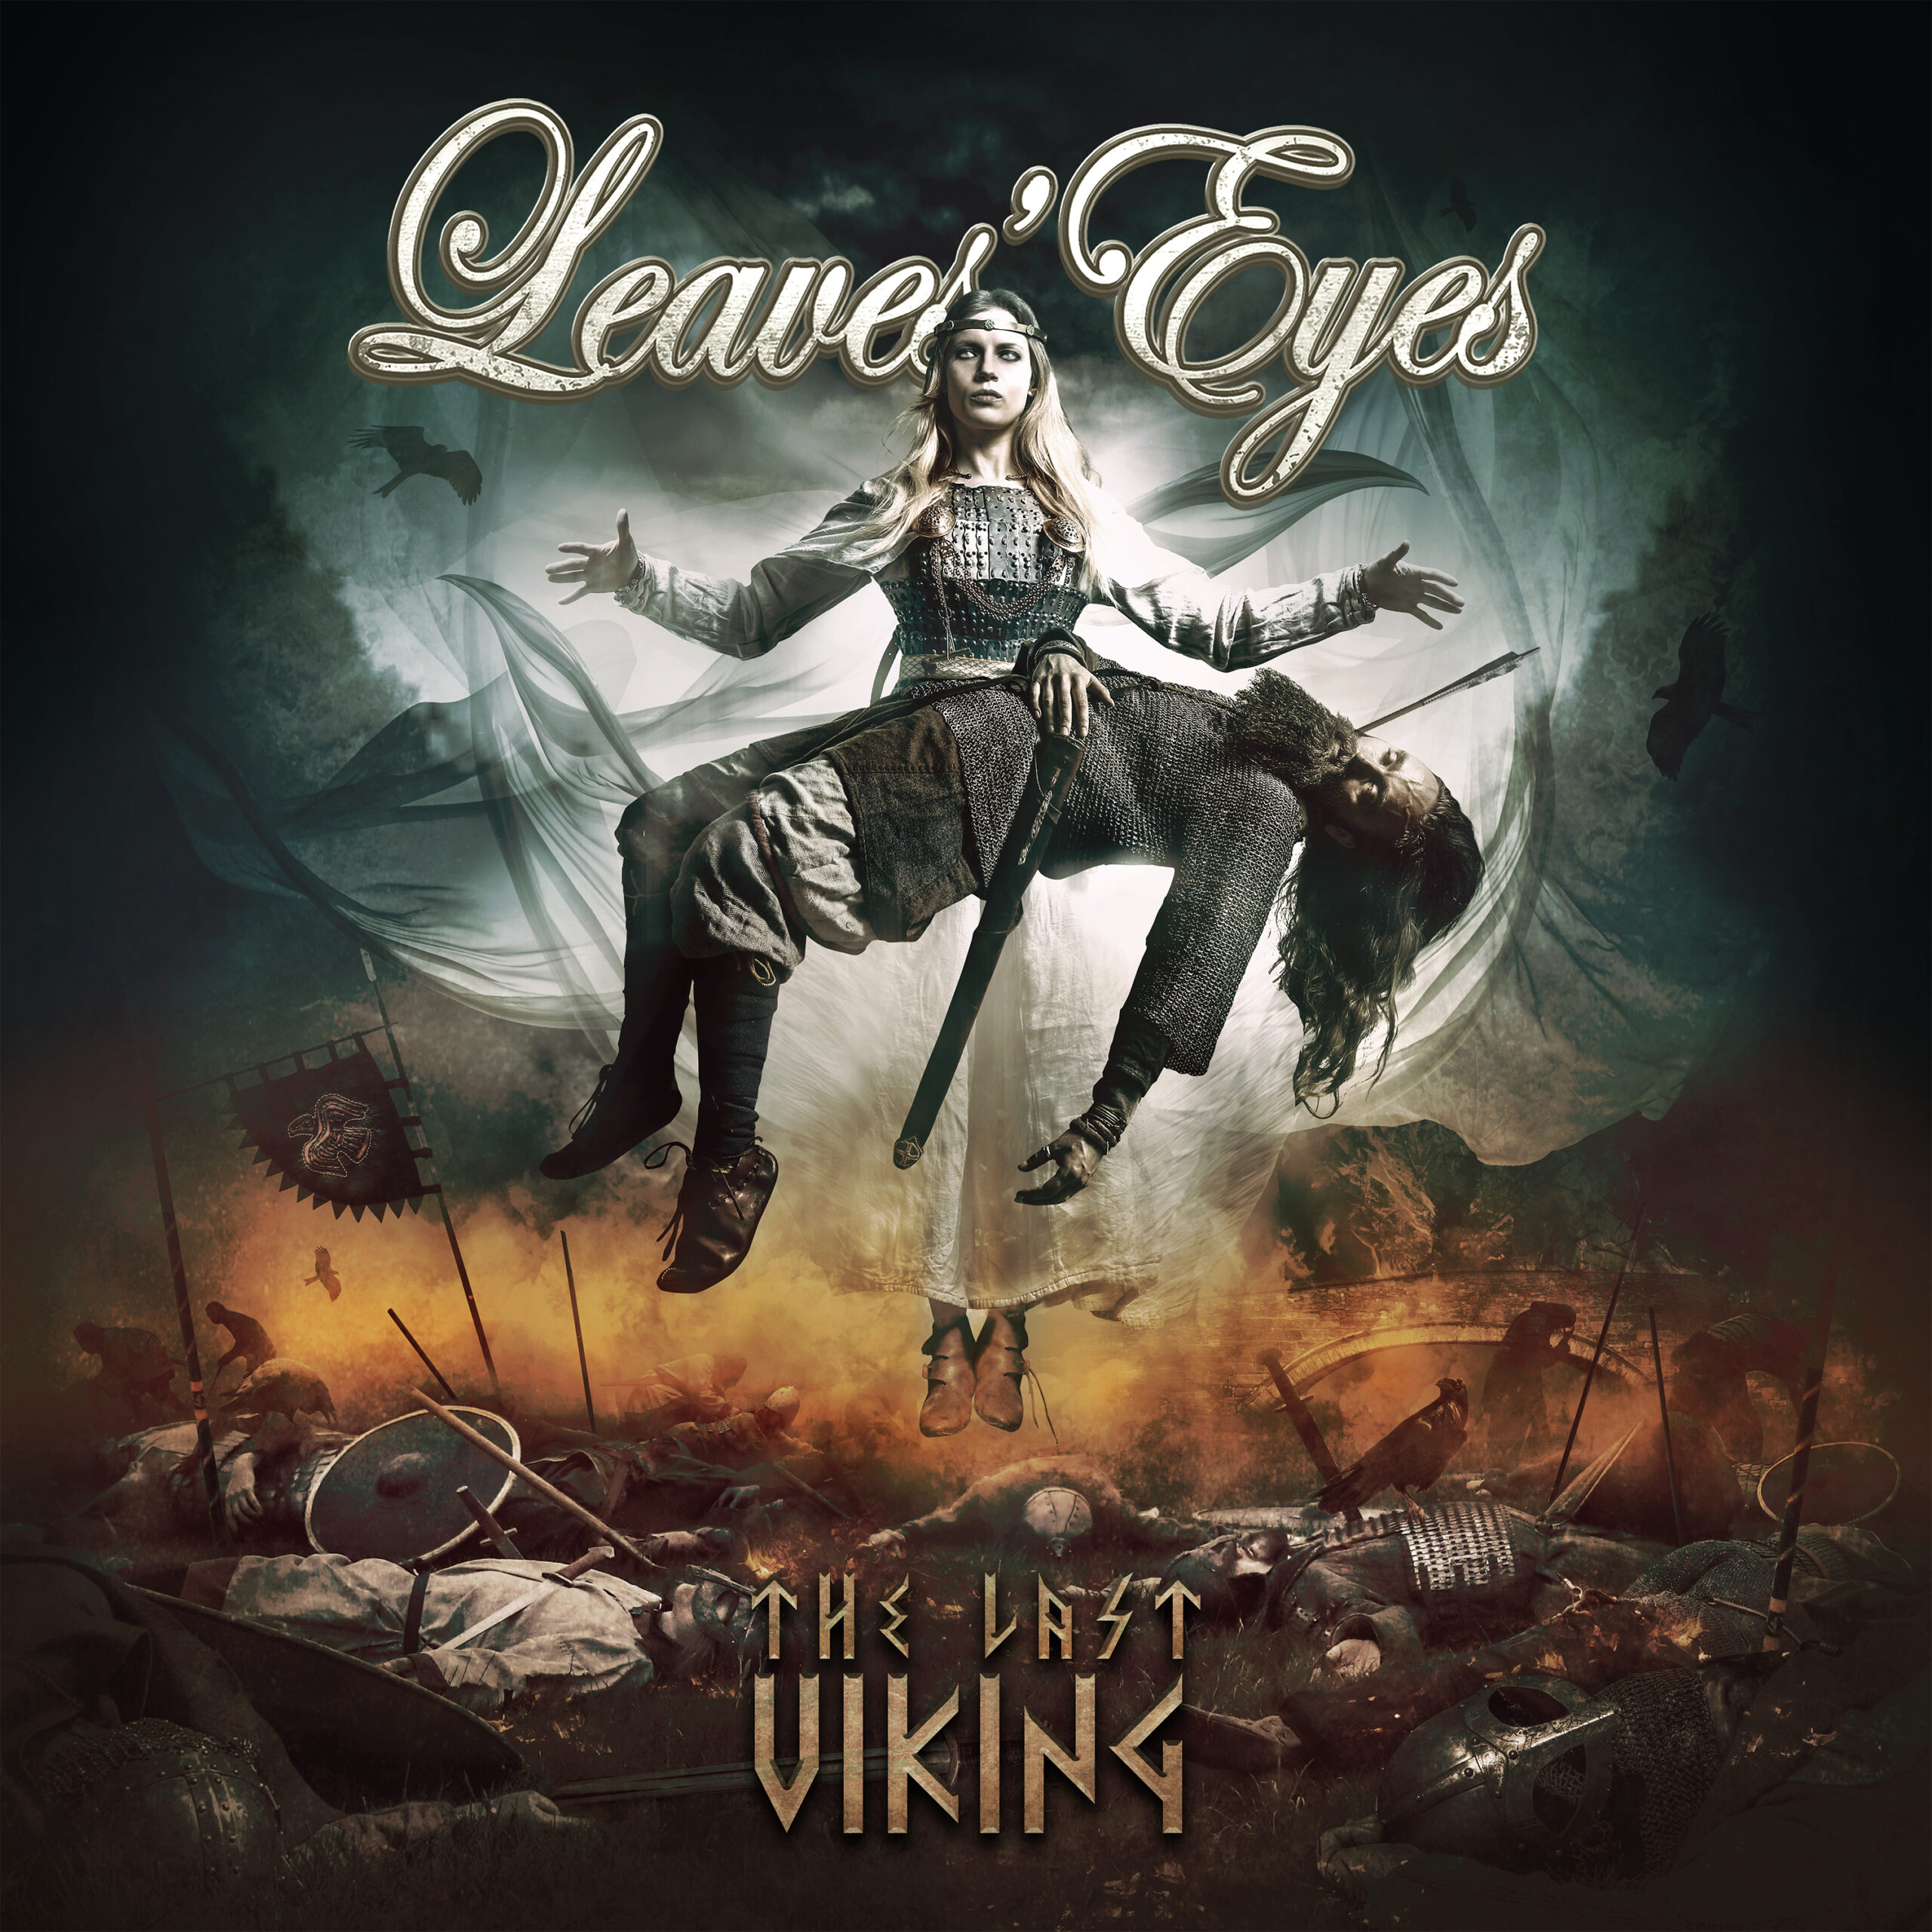 REVIEW: Leaves' Eyes – The Last Viking